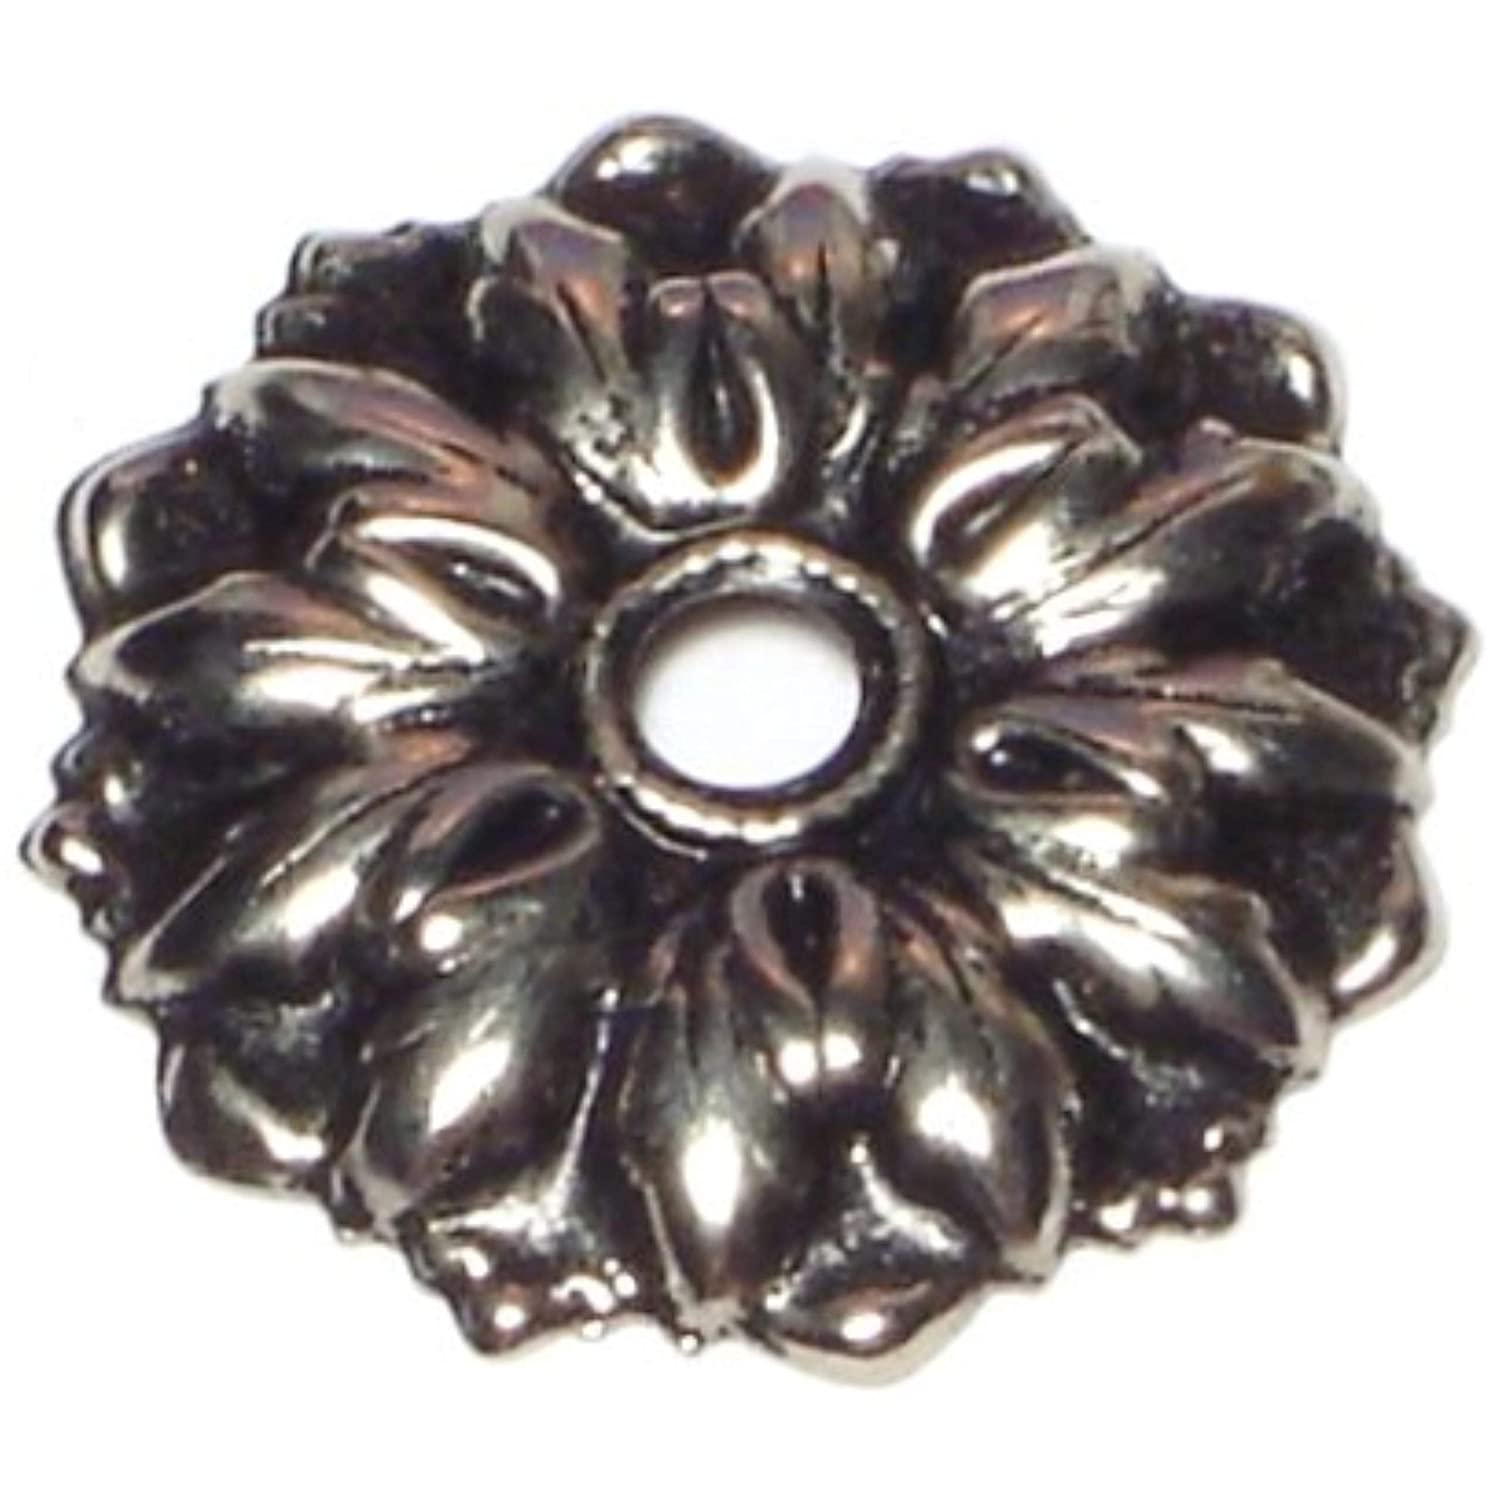 Hard-to-Find Fastener 014973346607 Mirror Rosettes with Screws, 7/8-Inch, 12-Piece